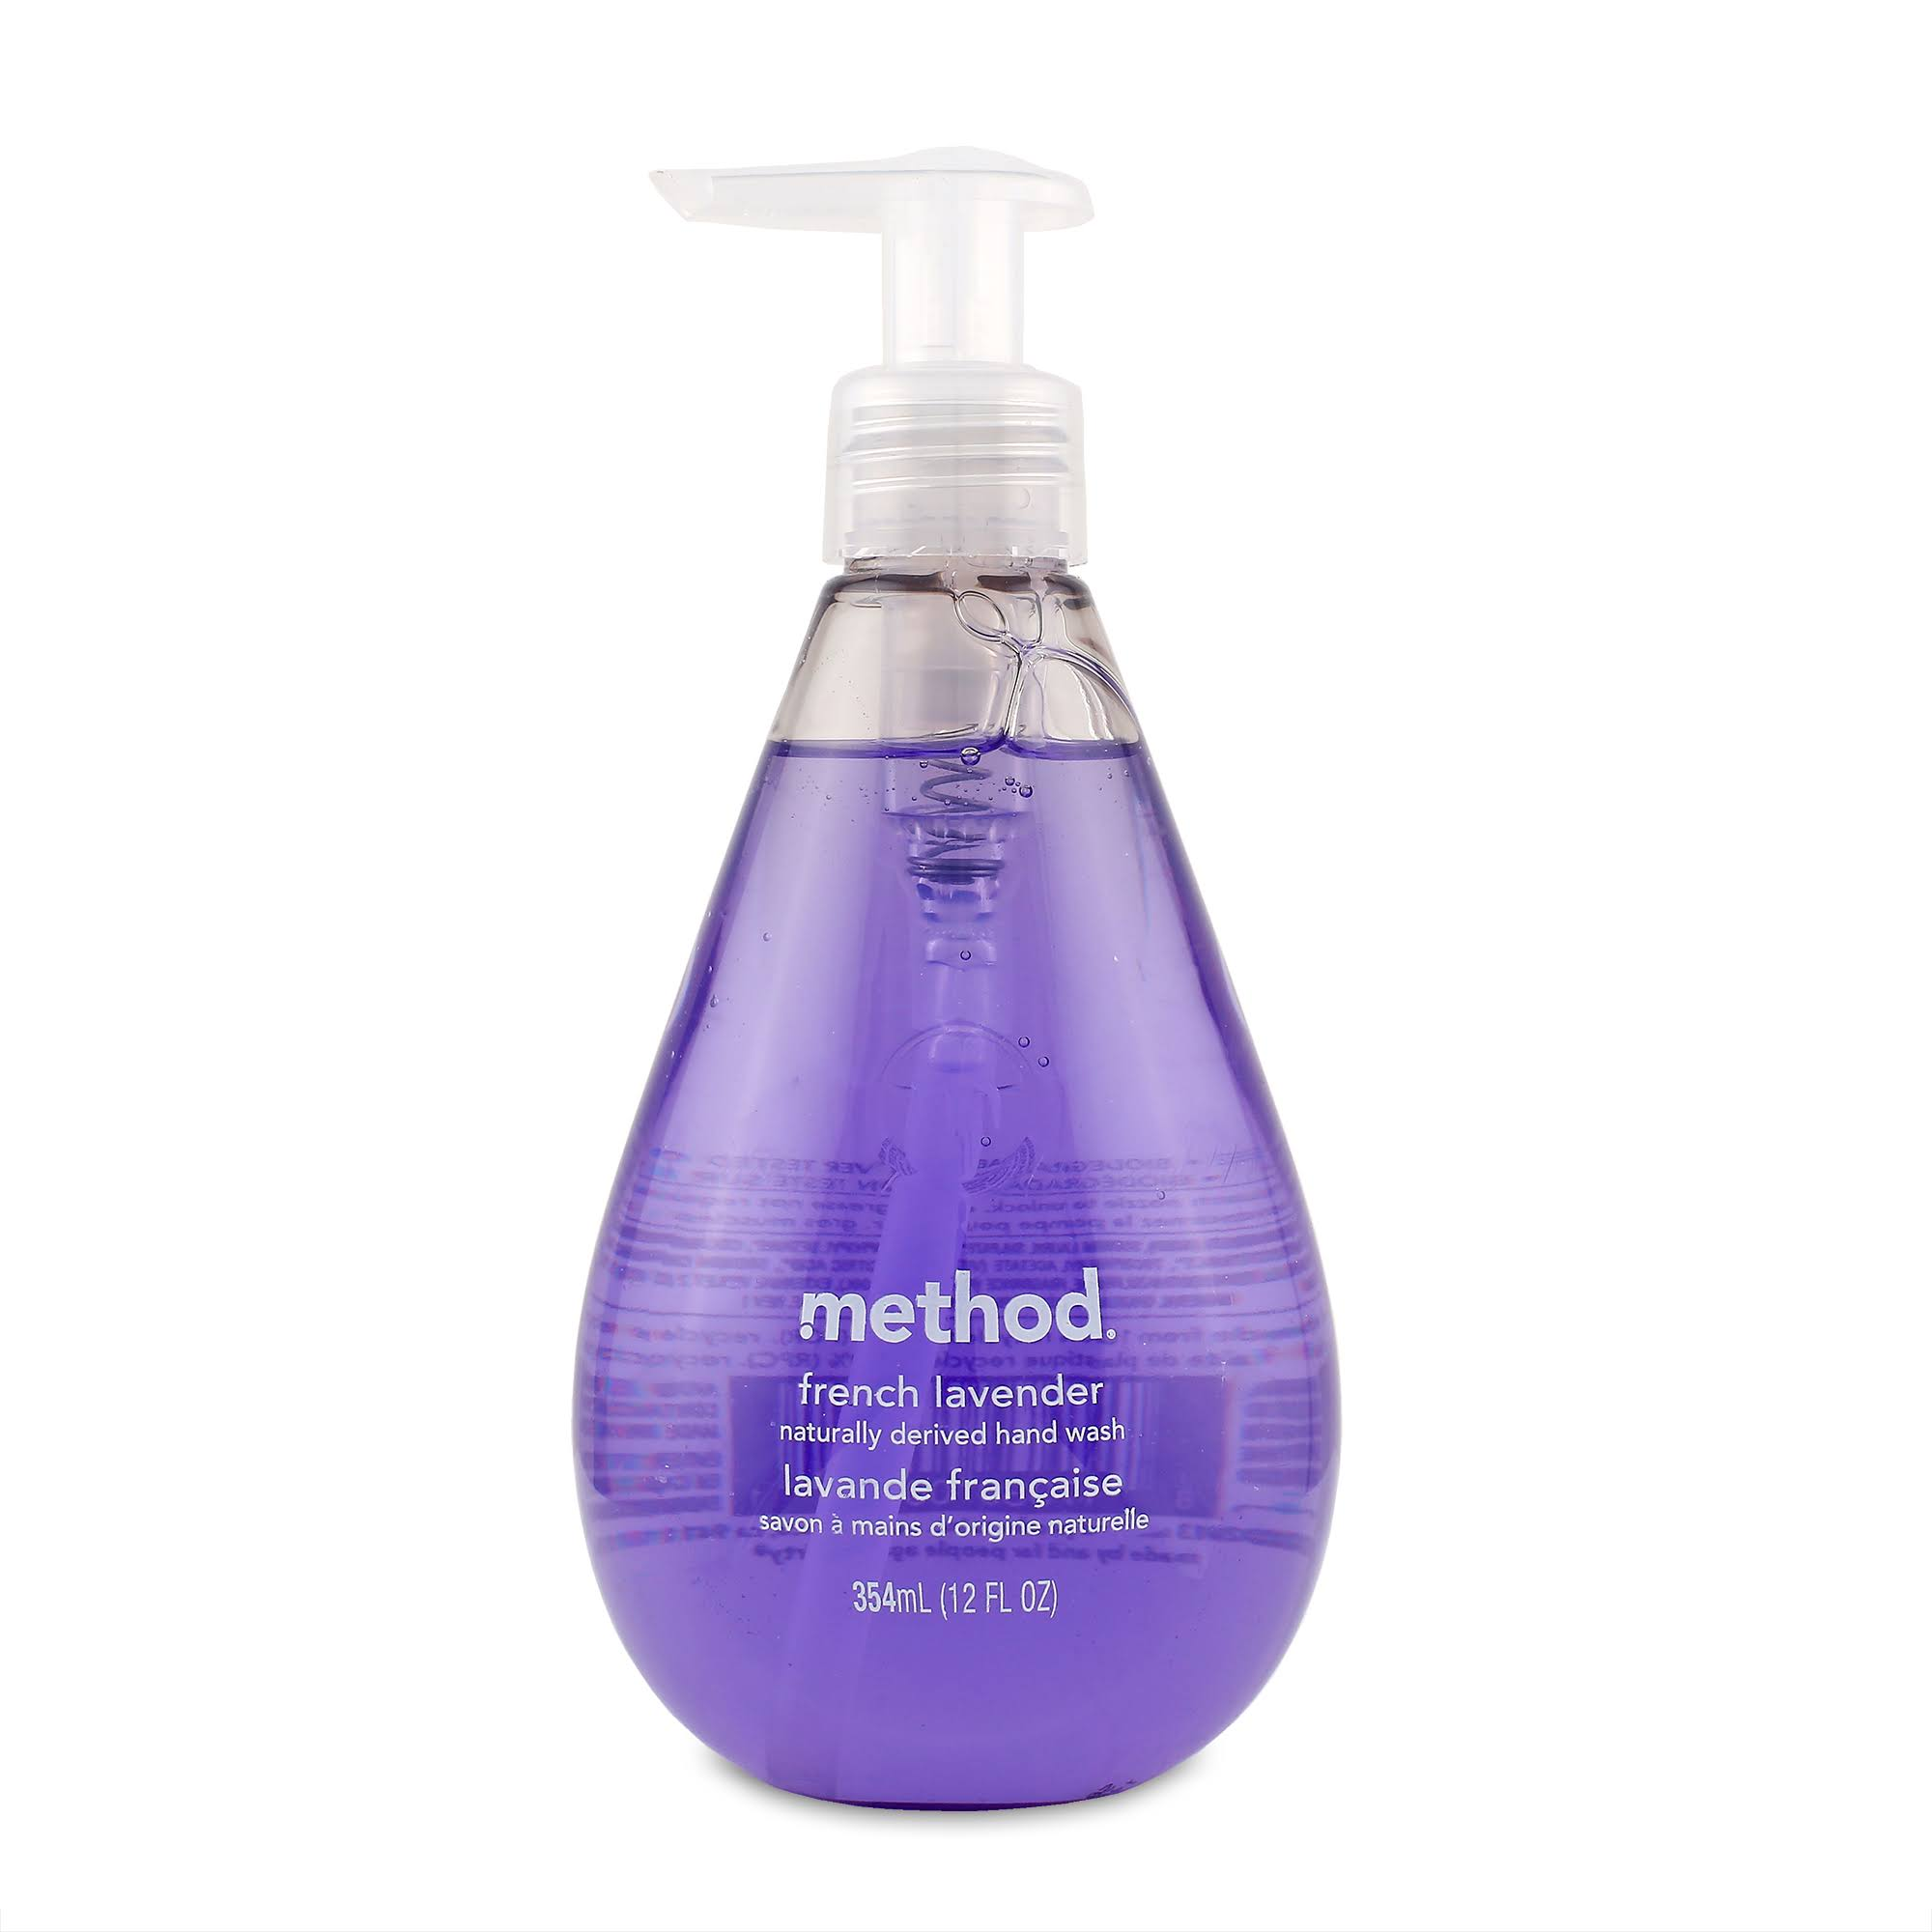 Method Gel Hand Soap - French Lavender, 12oz